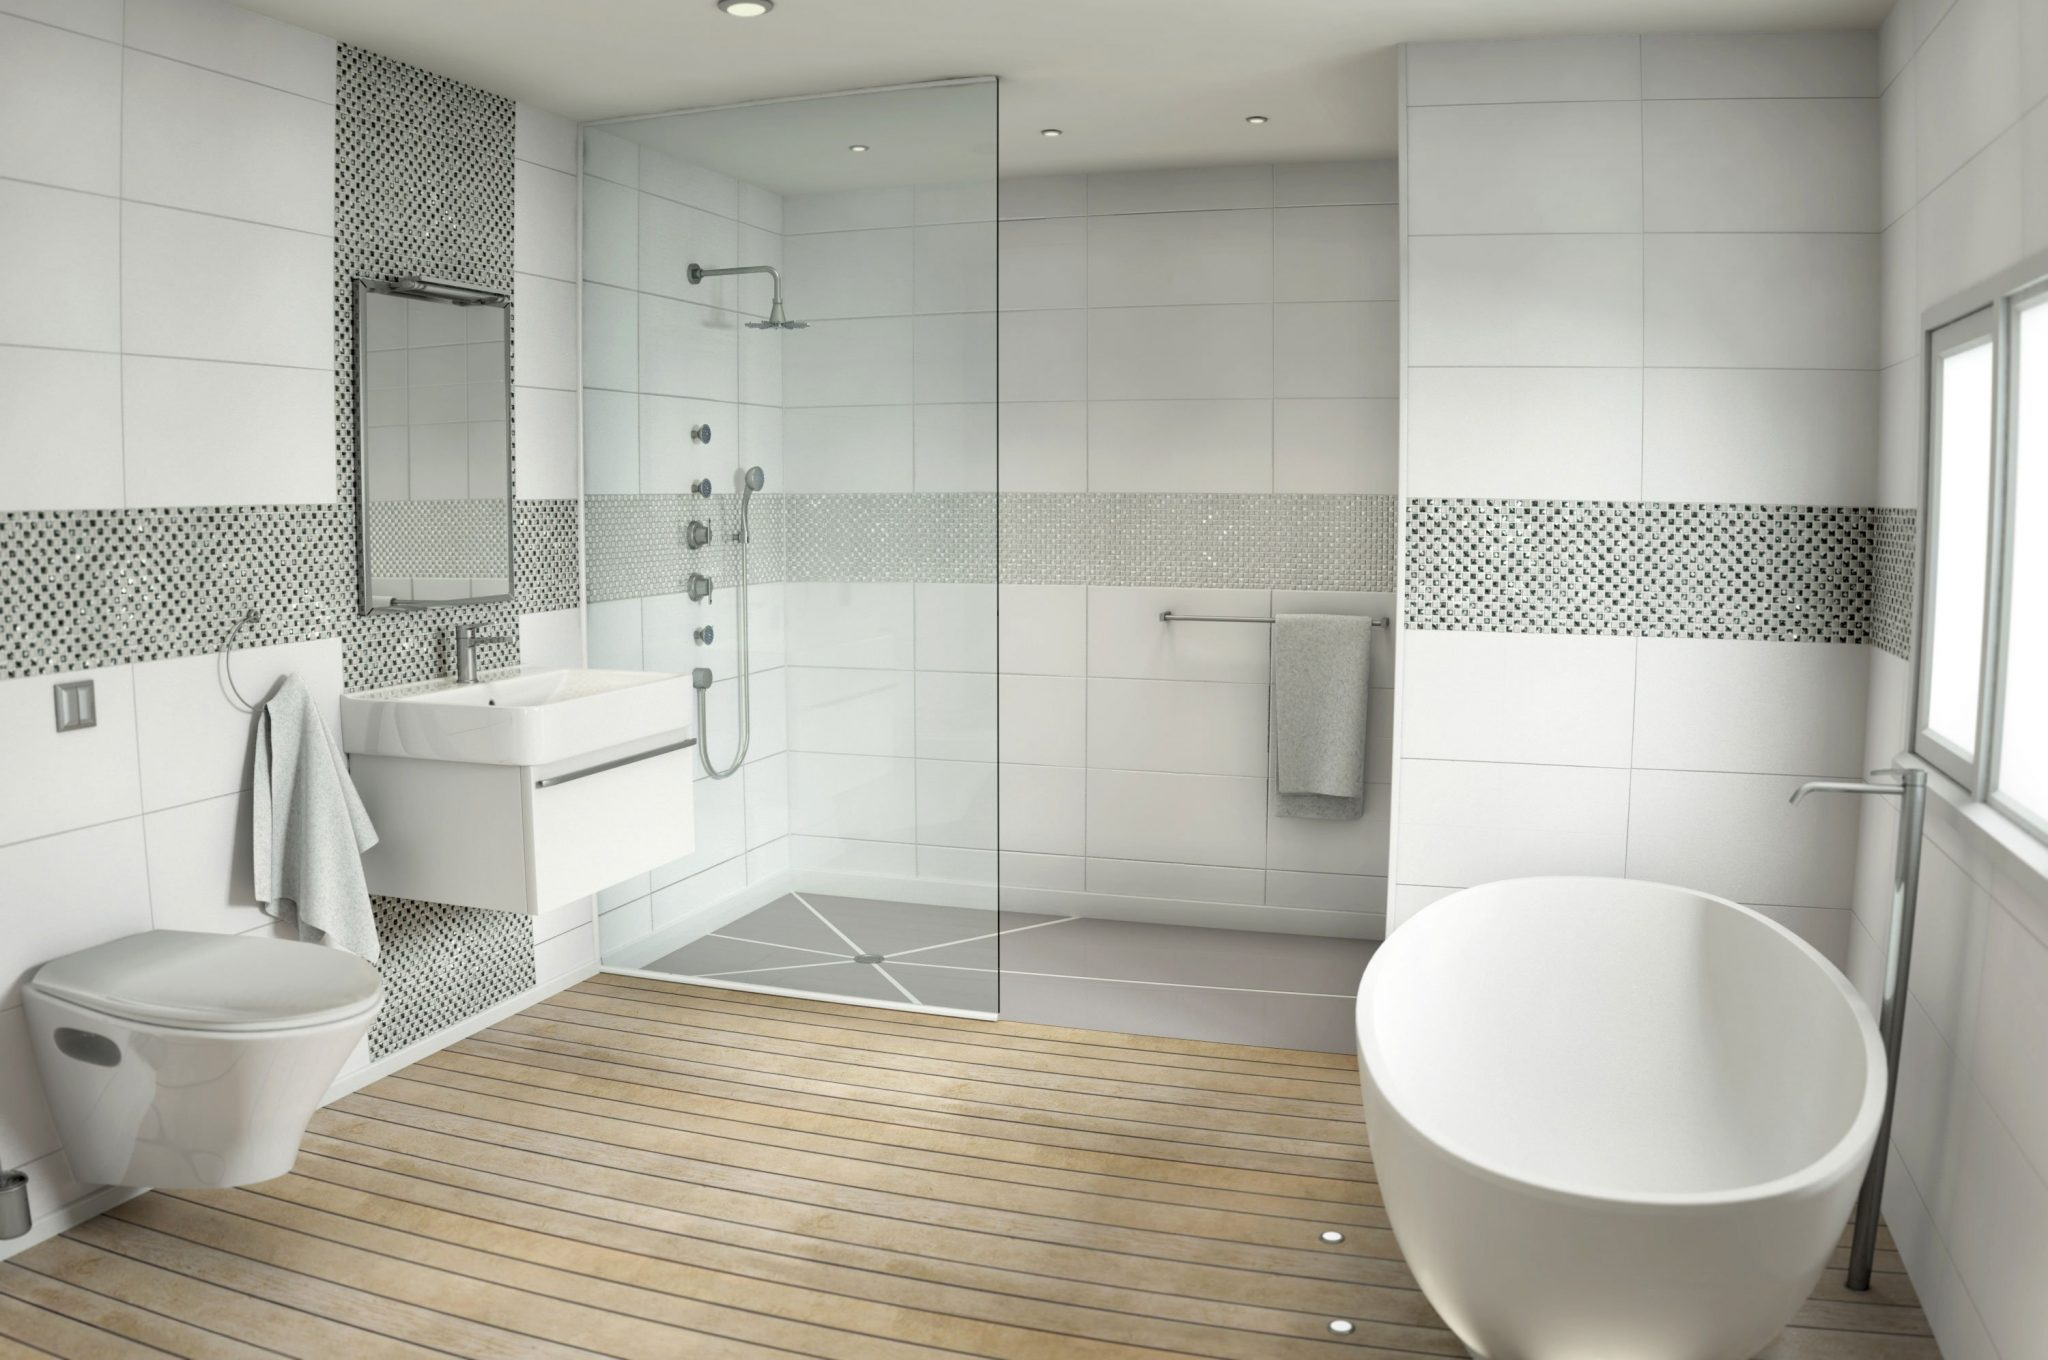 How to choose bathroom mosaic tiles » Mosaic Village